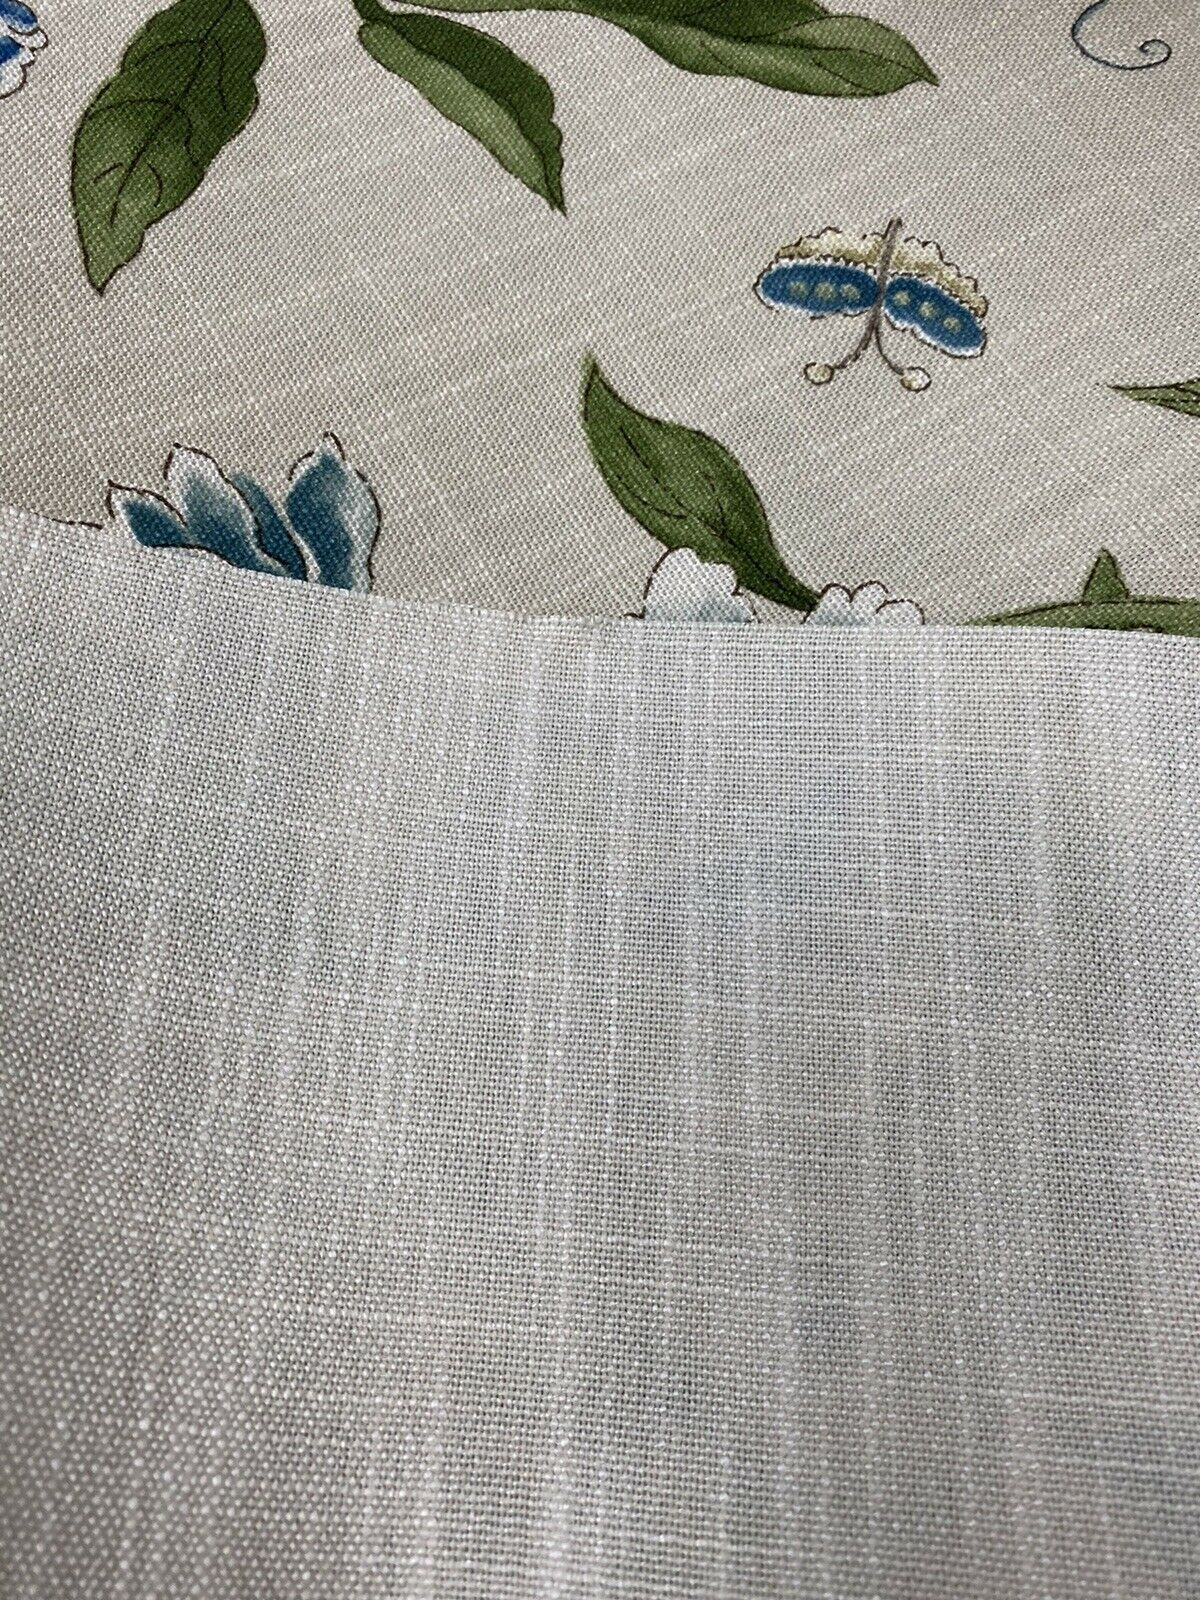 NEW! Designer Floral & Bird Motif Drapery Upholstery Fabric- French Blue & Flax